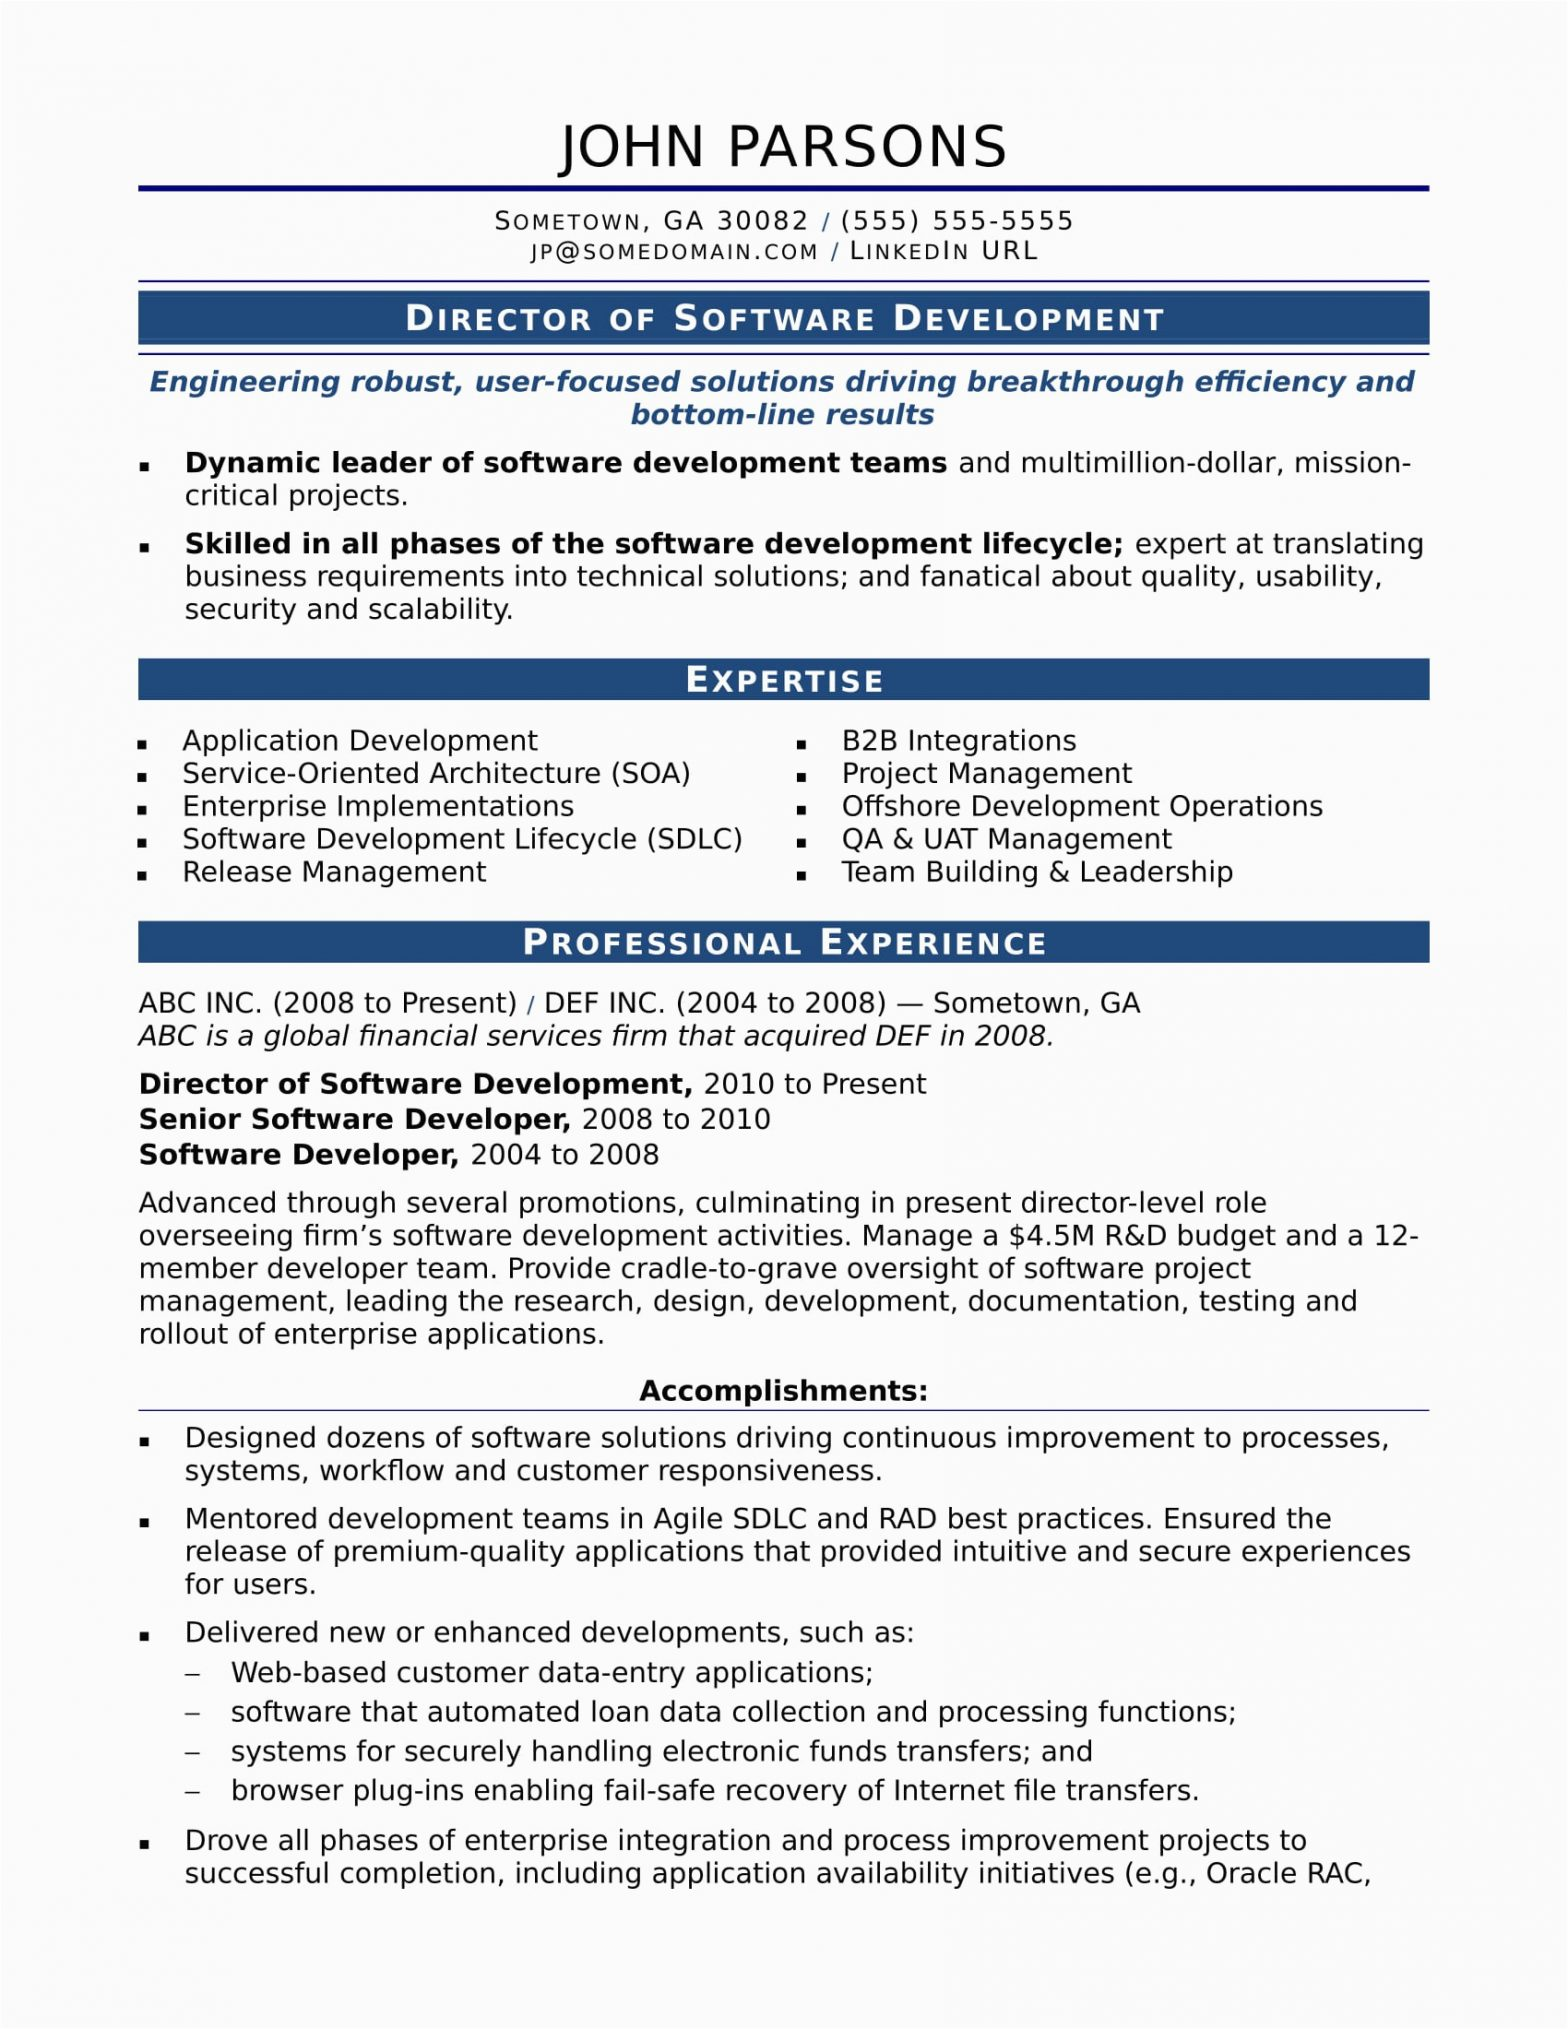 Resume Samples for Experienced software Professionals Sample Resume for An Experienced It Developer